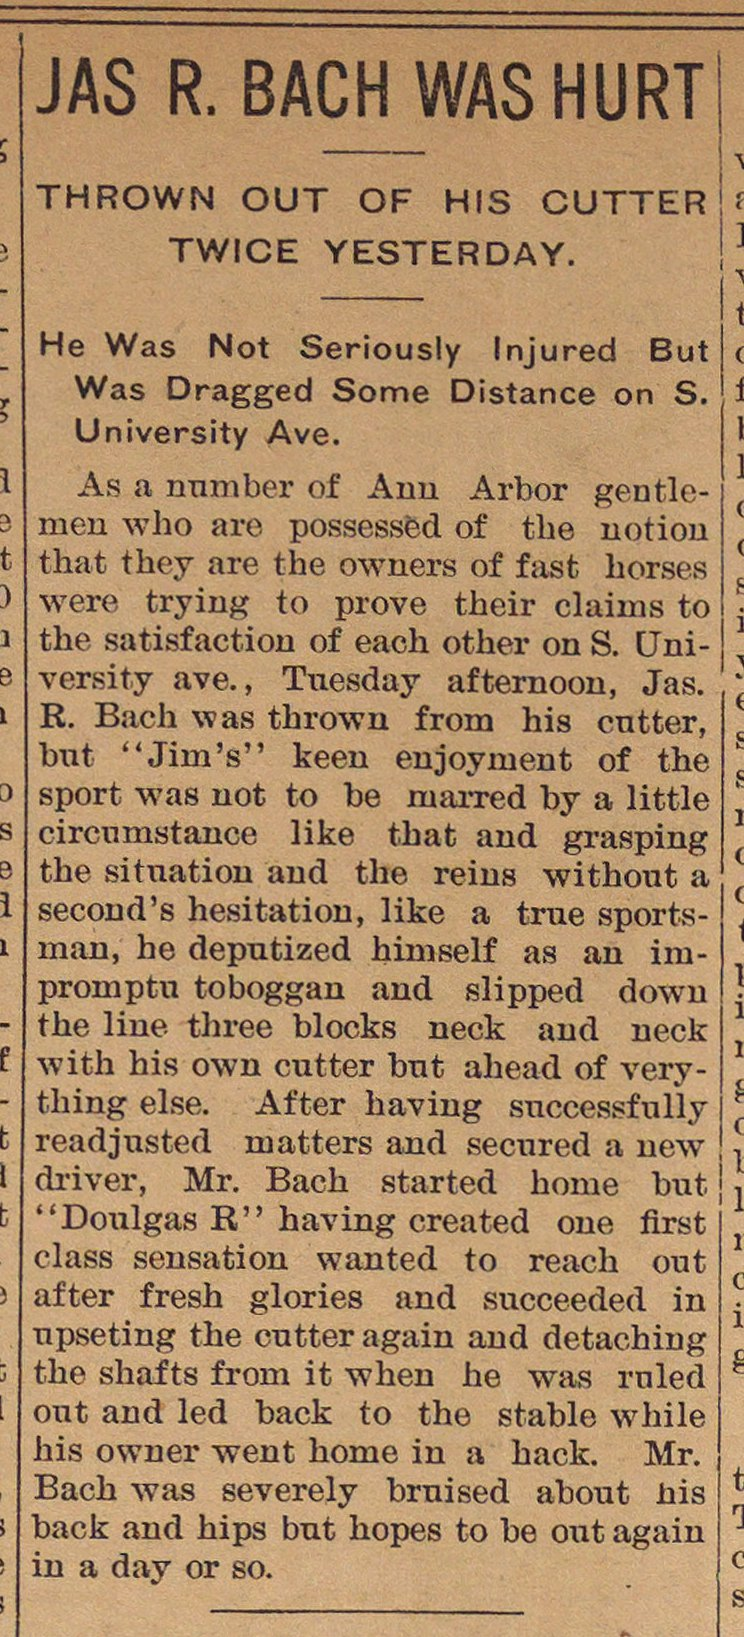 Jas R. Bach Was Hurt image